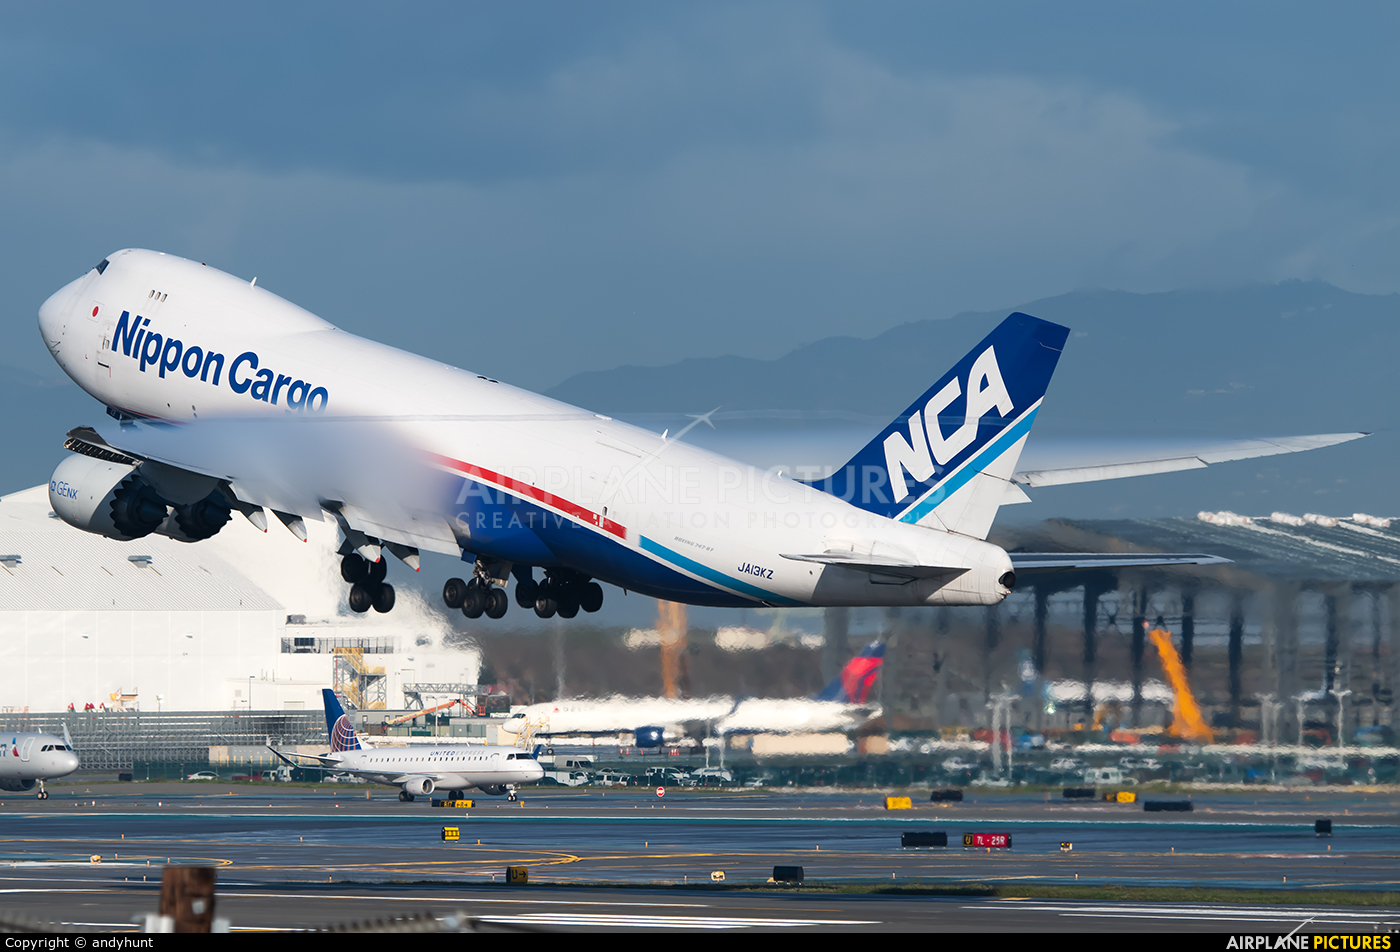 Nippon Cargo Airlines JA13KZ aircraft at Los Angeles Intl